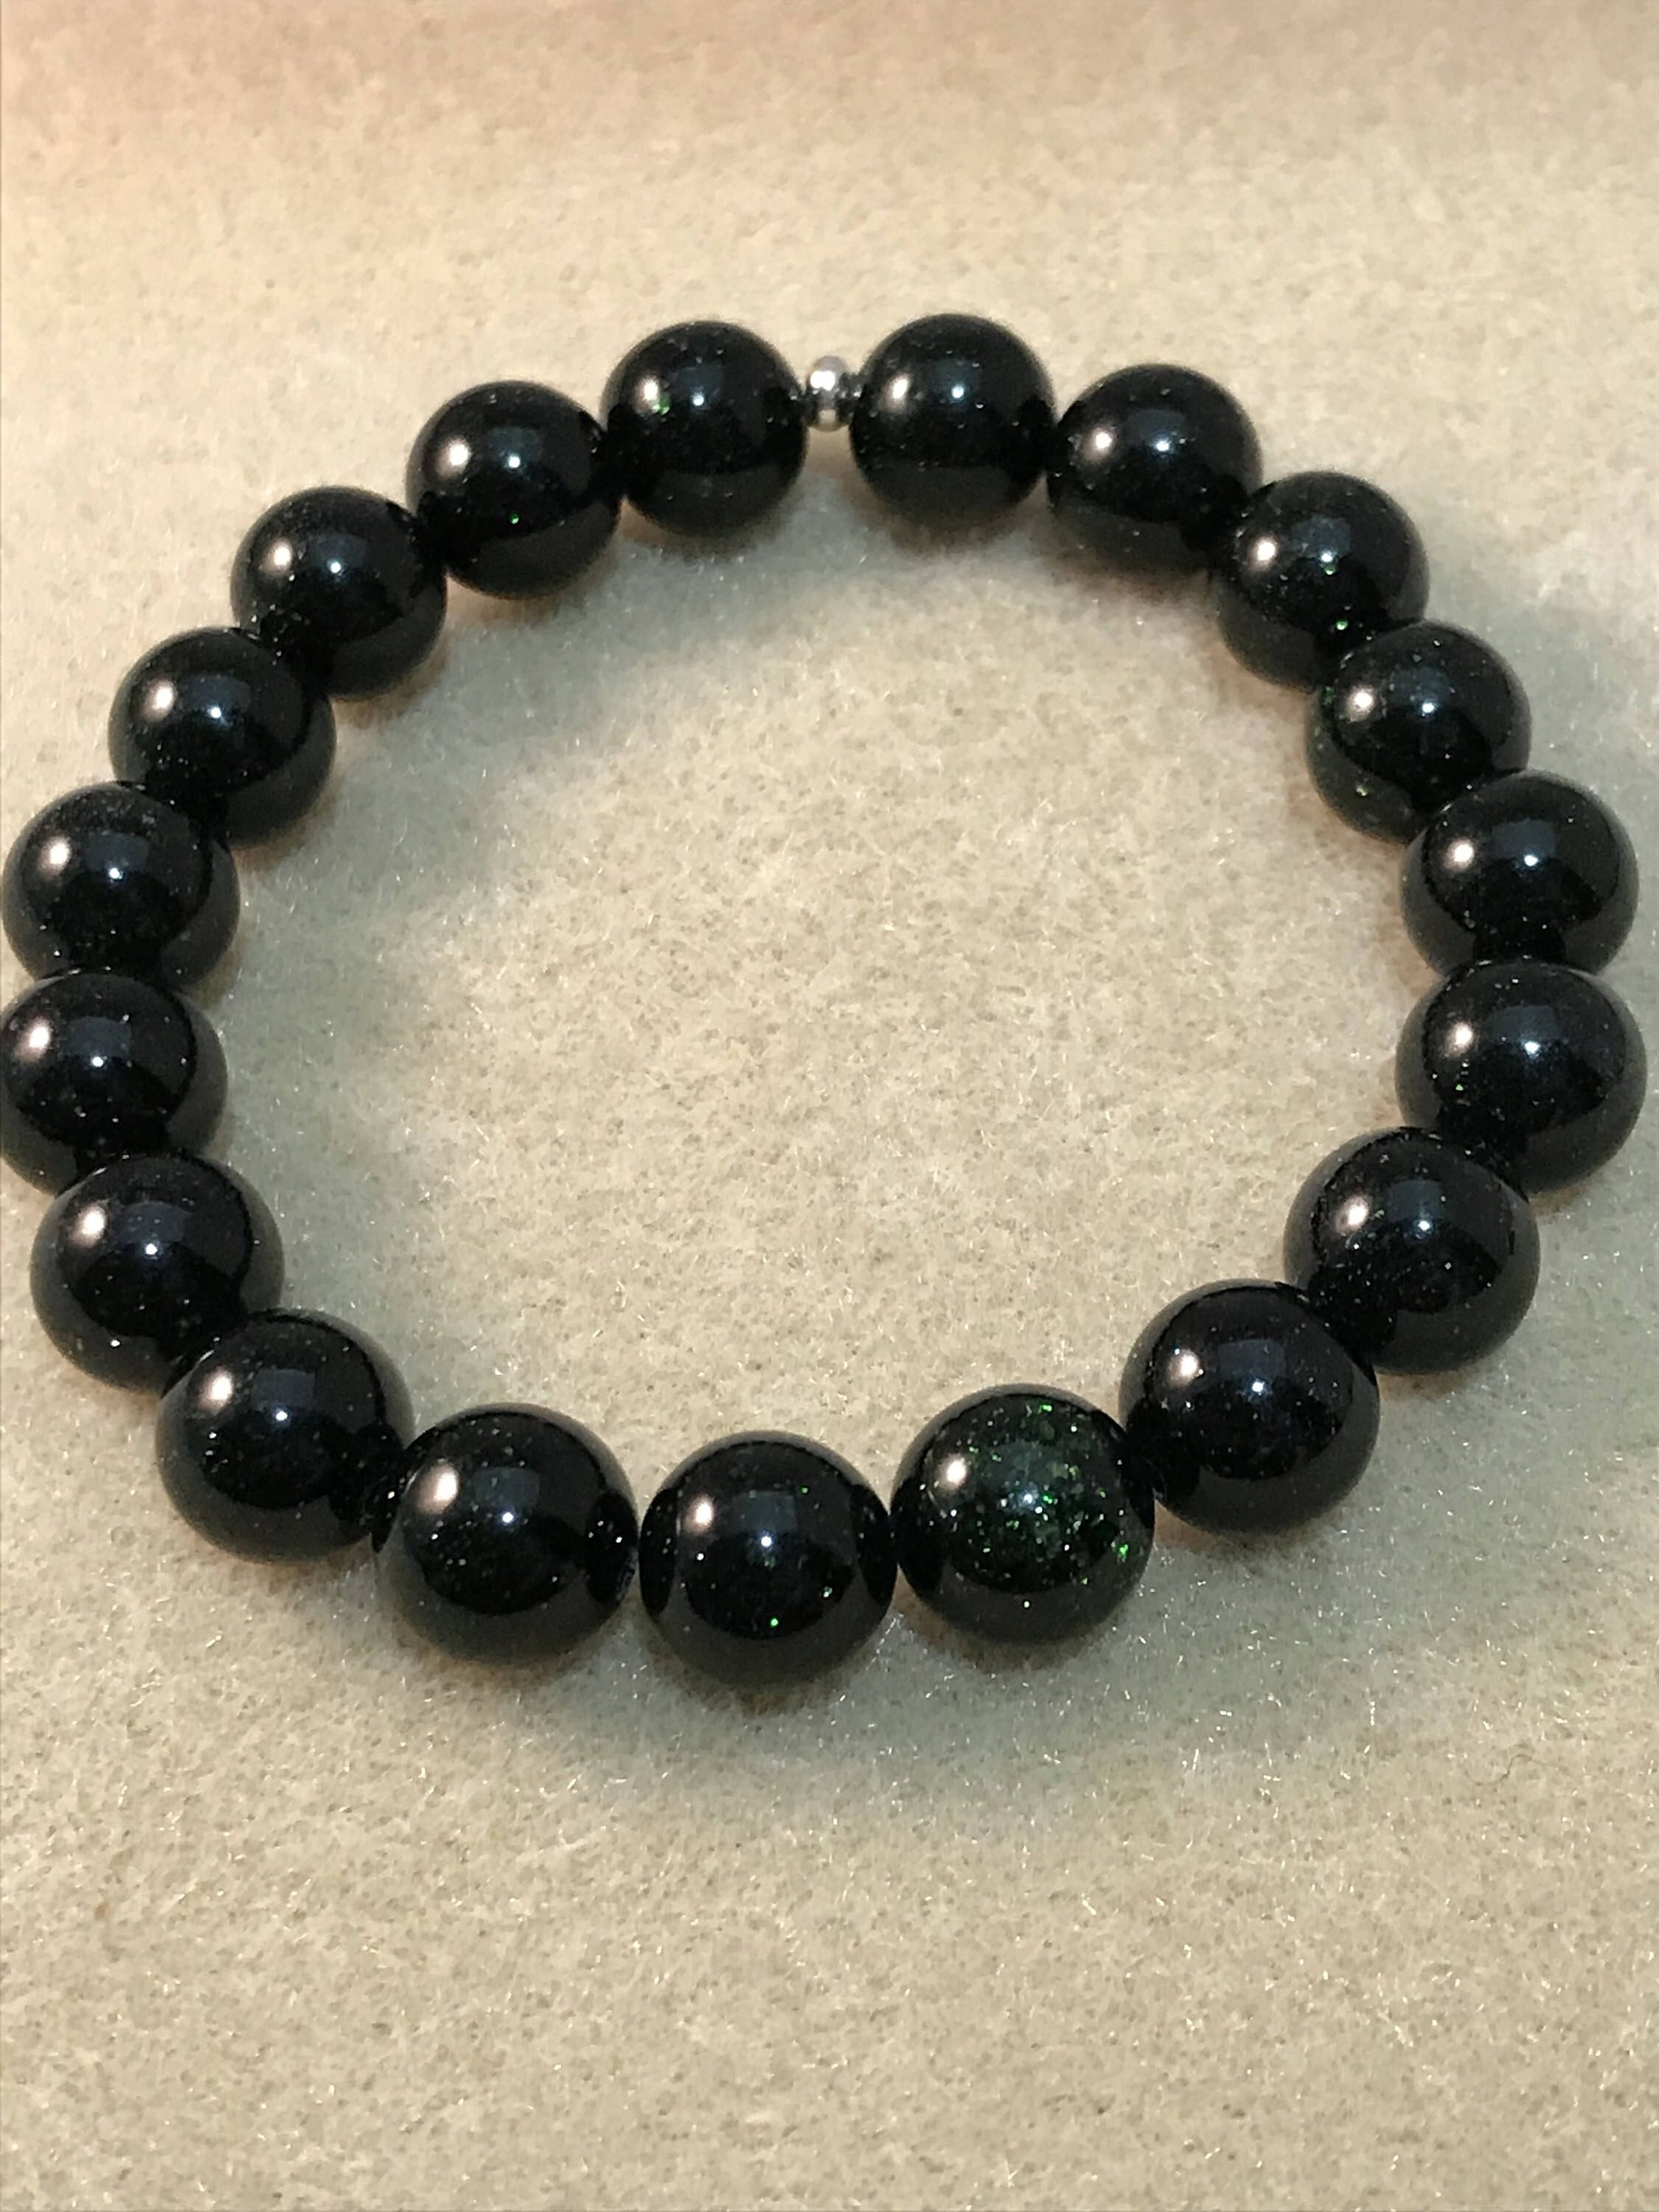 health balance bracelet energy hematite therapy item stone care beads magnetic elastic black bead